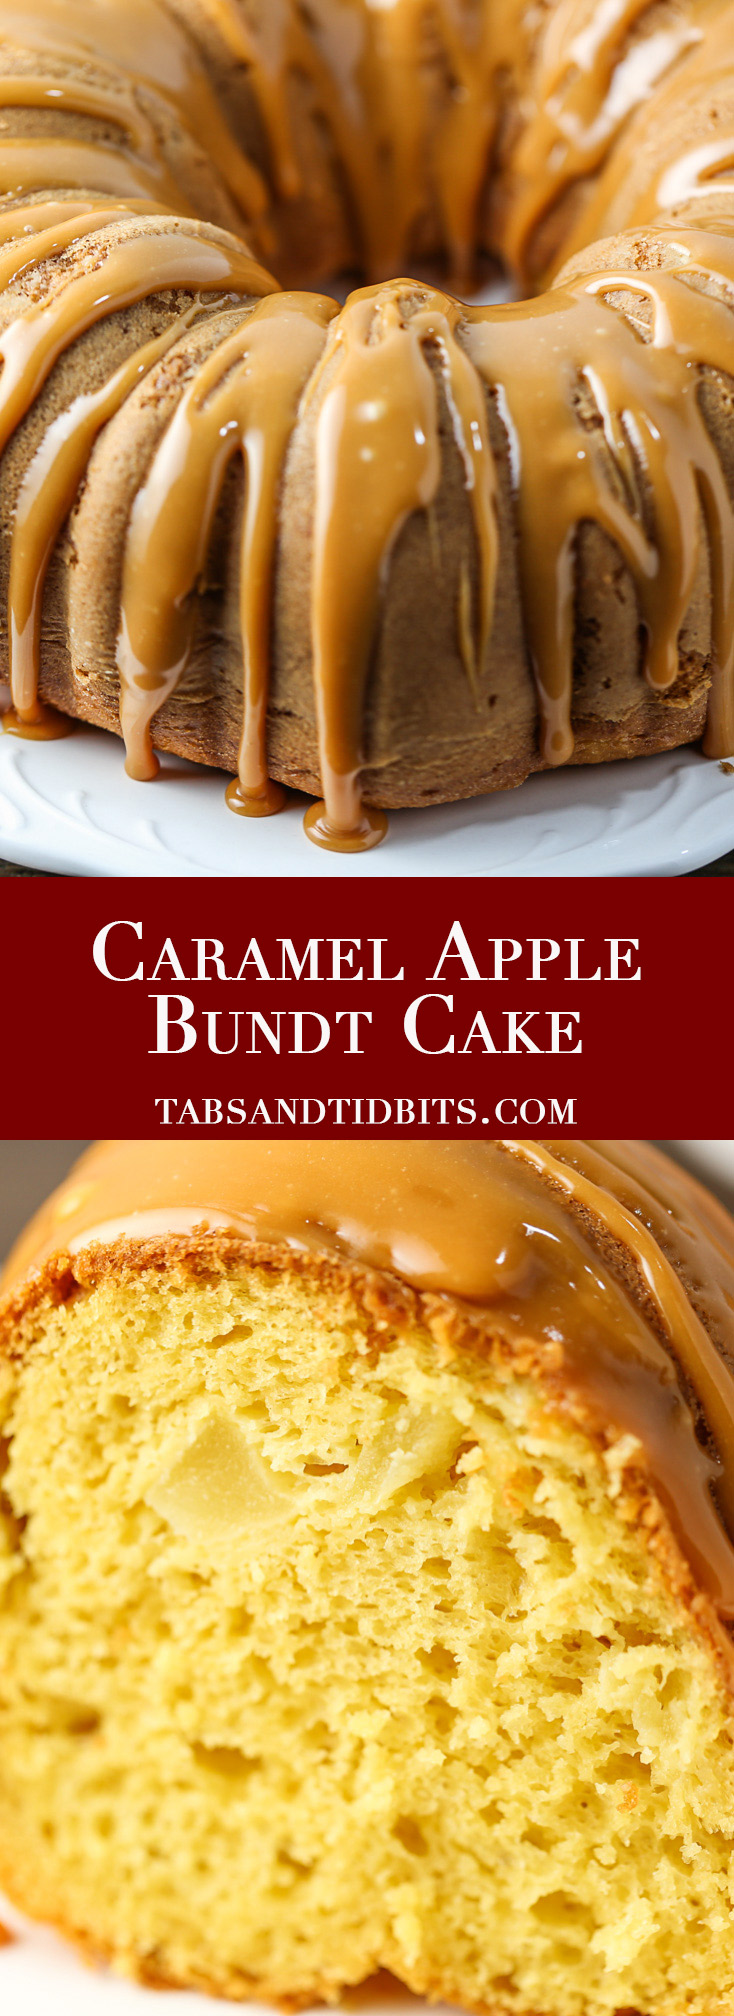 Caramel Apple Bundt Cake - A moist cake filled with fresh apples and drizzled with sweet caramel glaze!